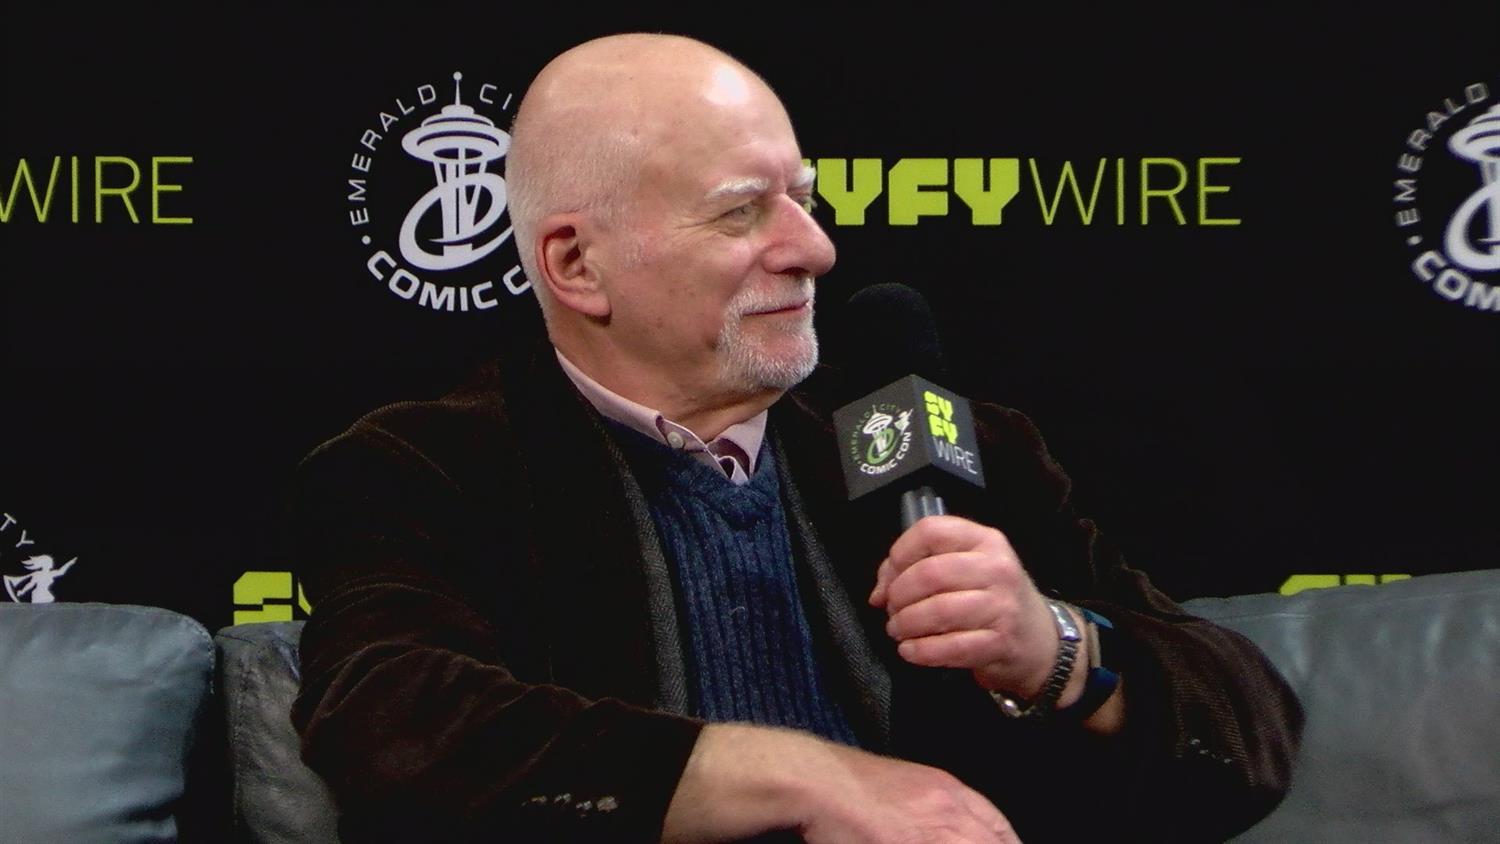 Full Chris Claremont/X-Men Interview From Emerald City Comic Con